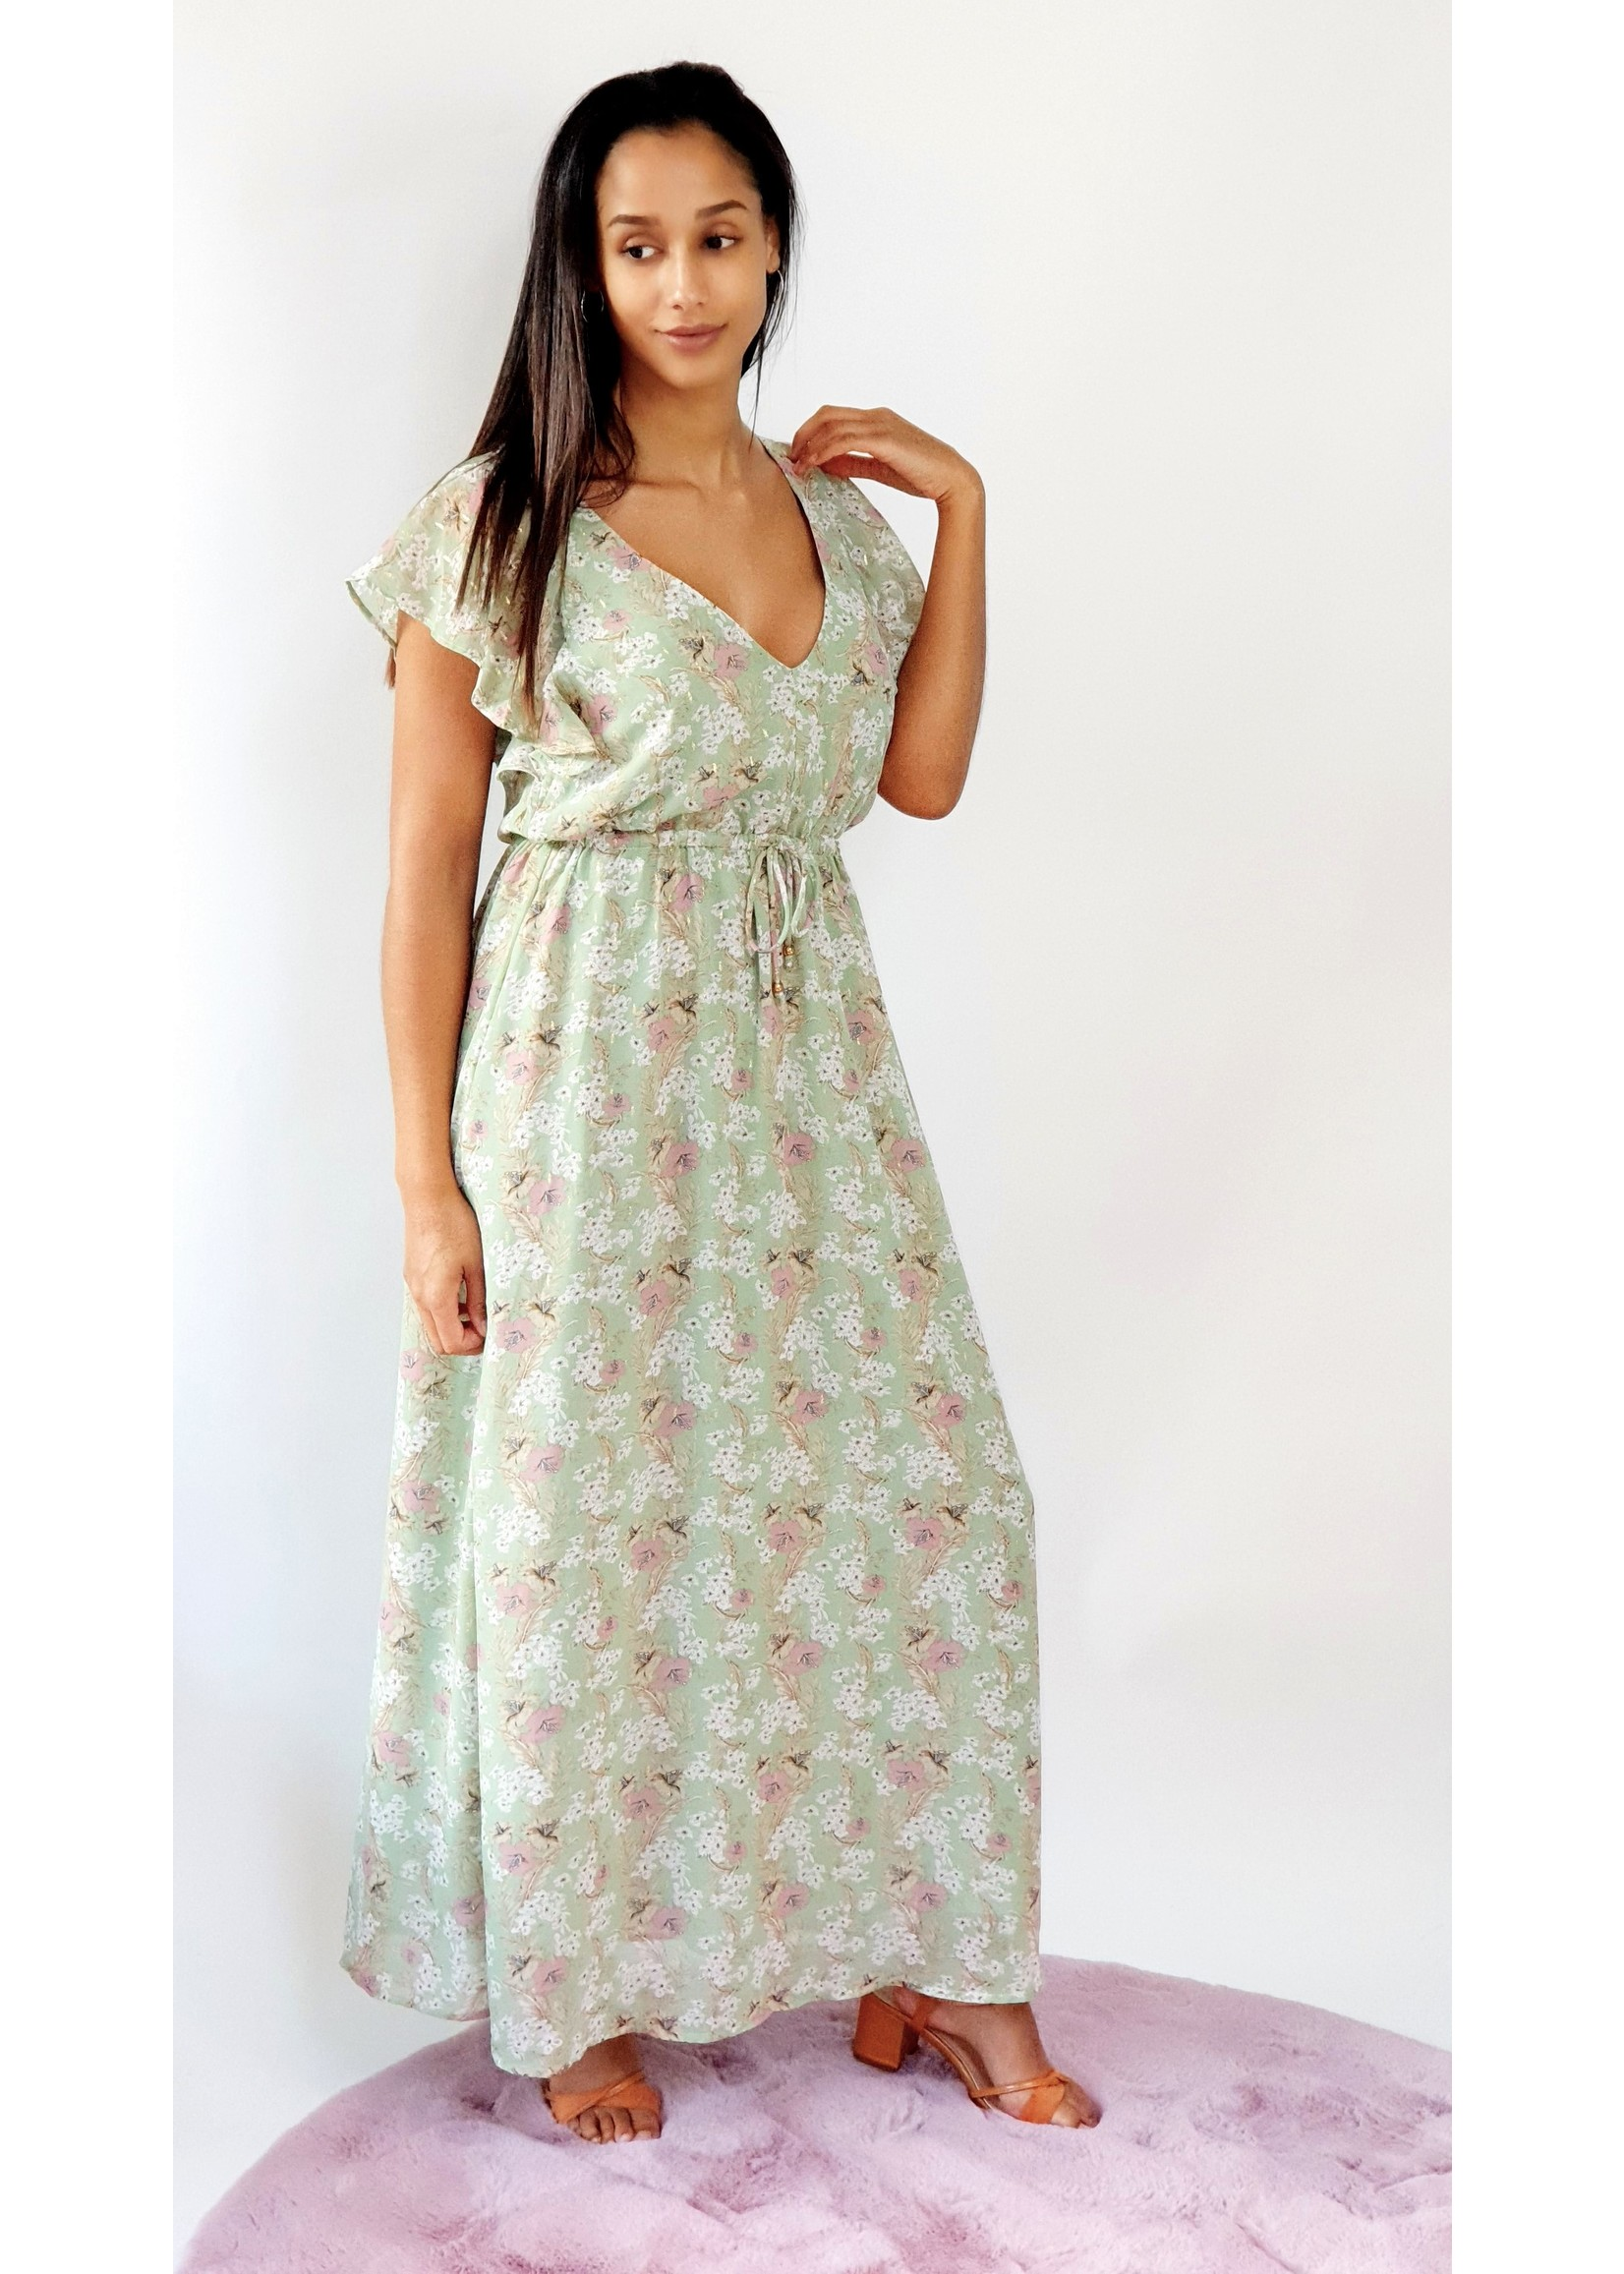 Thé dreamy dress